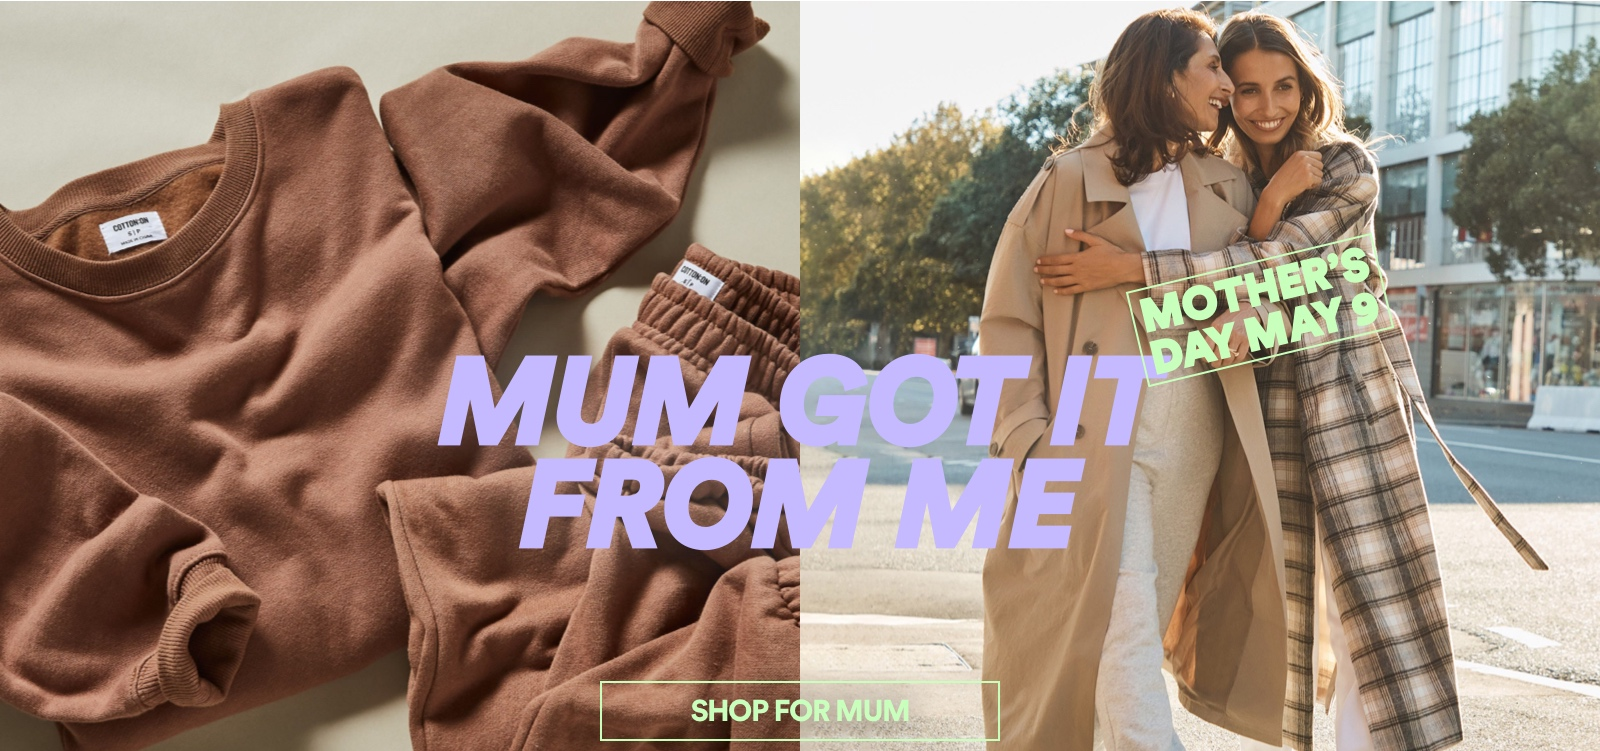 Mum Got It From Me. Shop For Mum